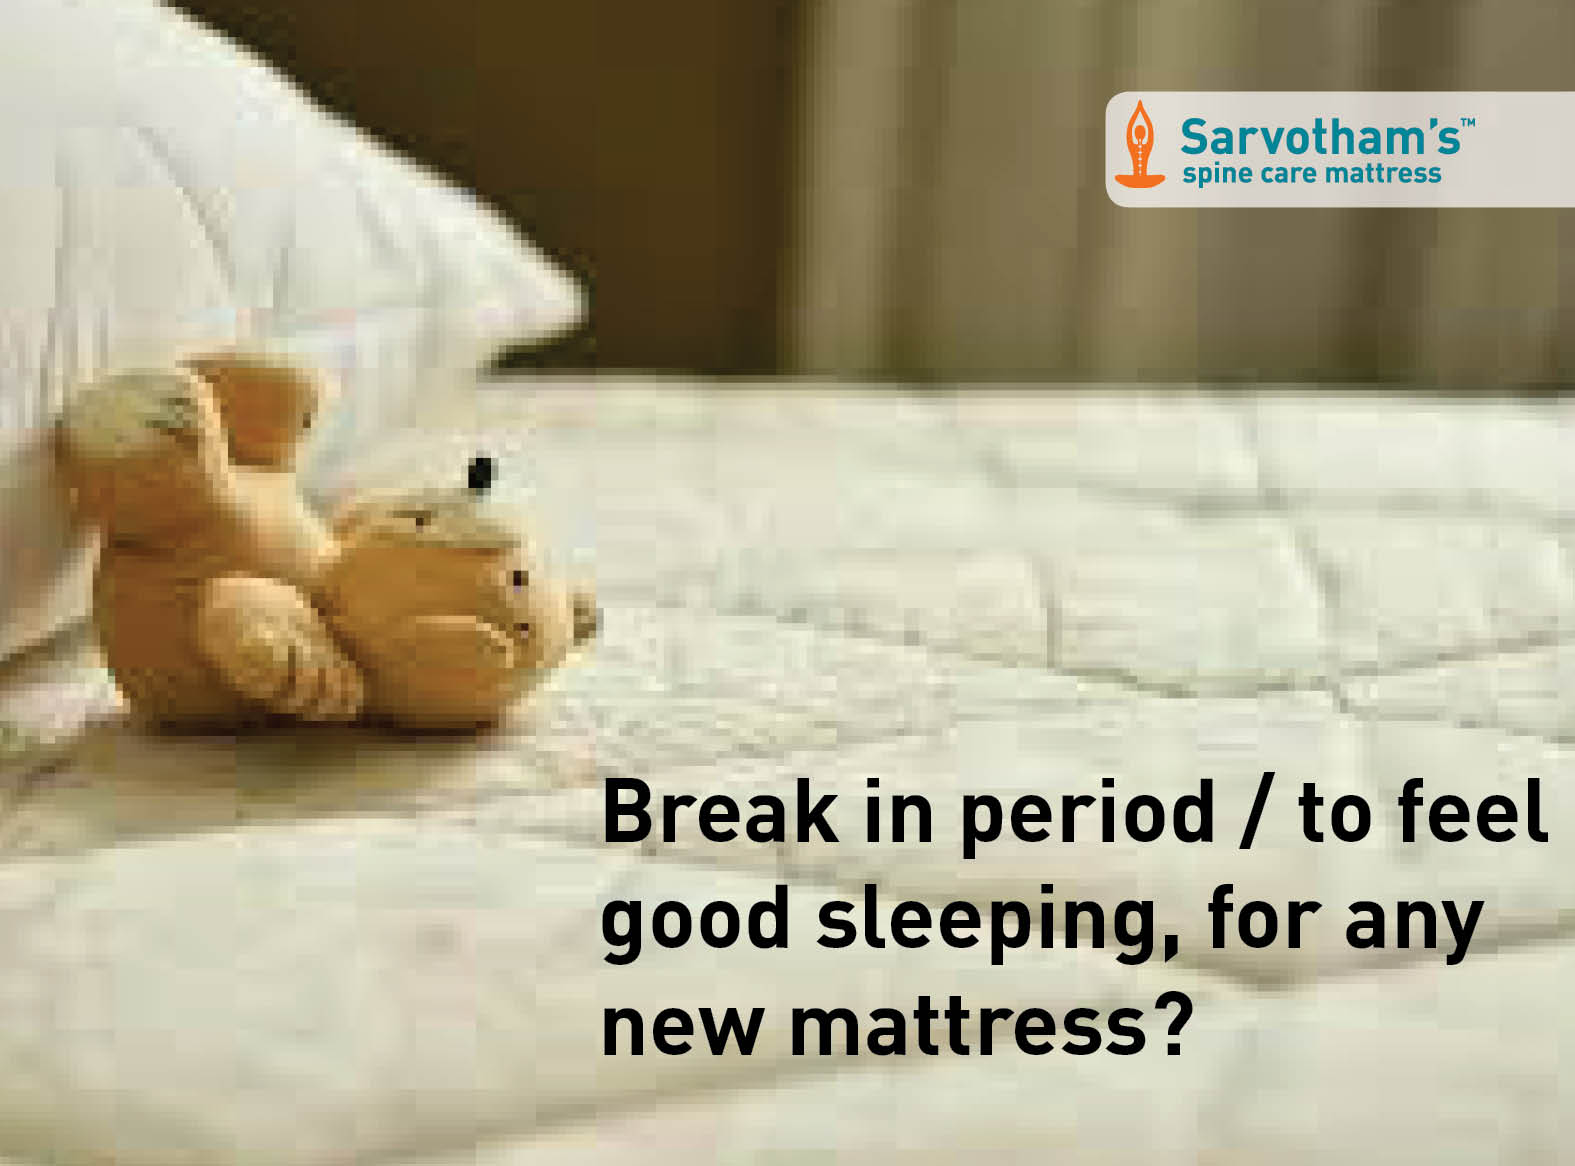 Break in period / to feel good sleeping, for any new mattress?